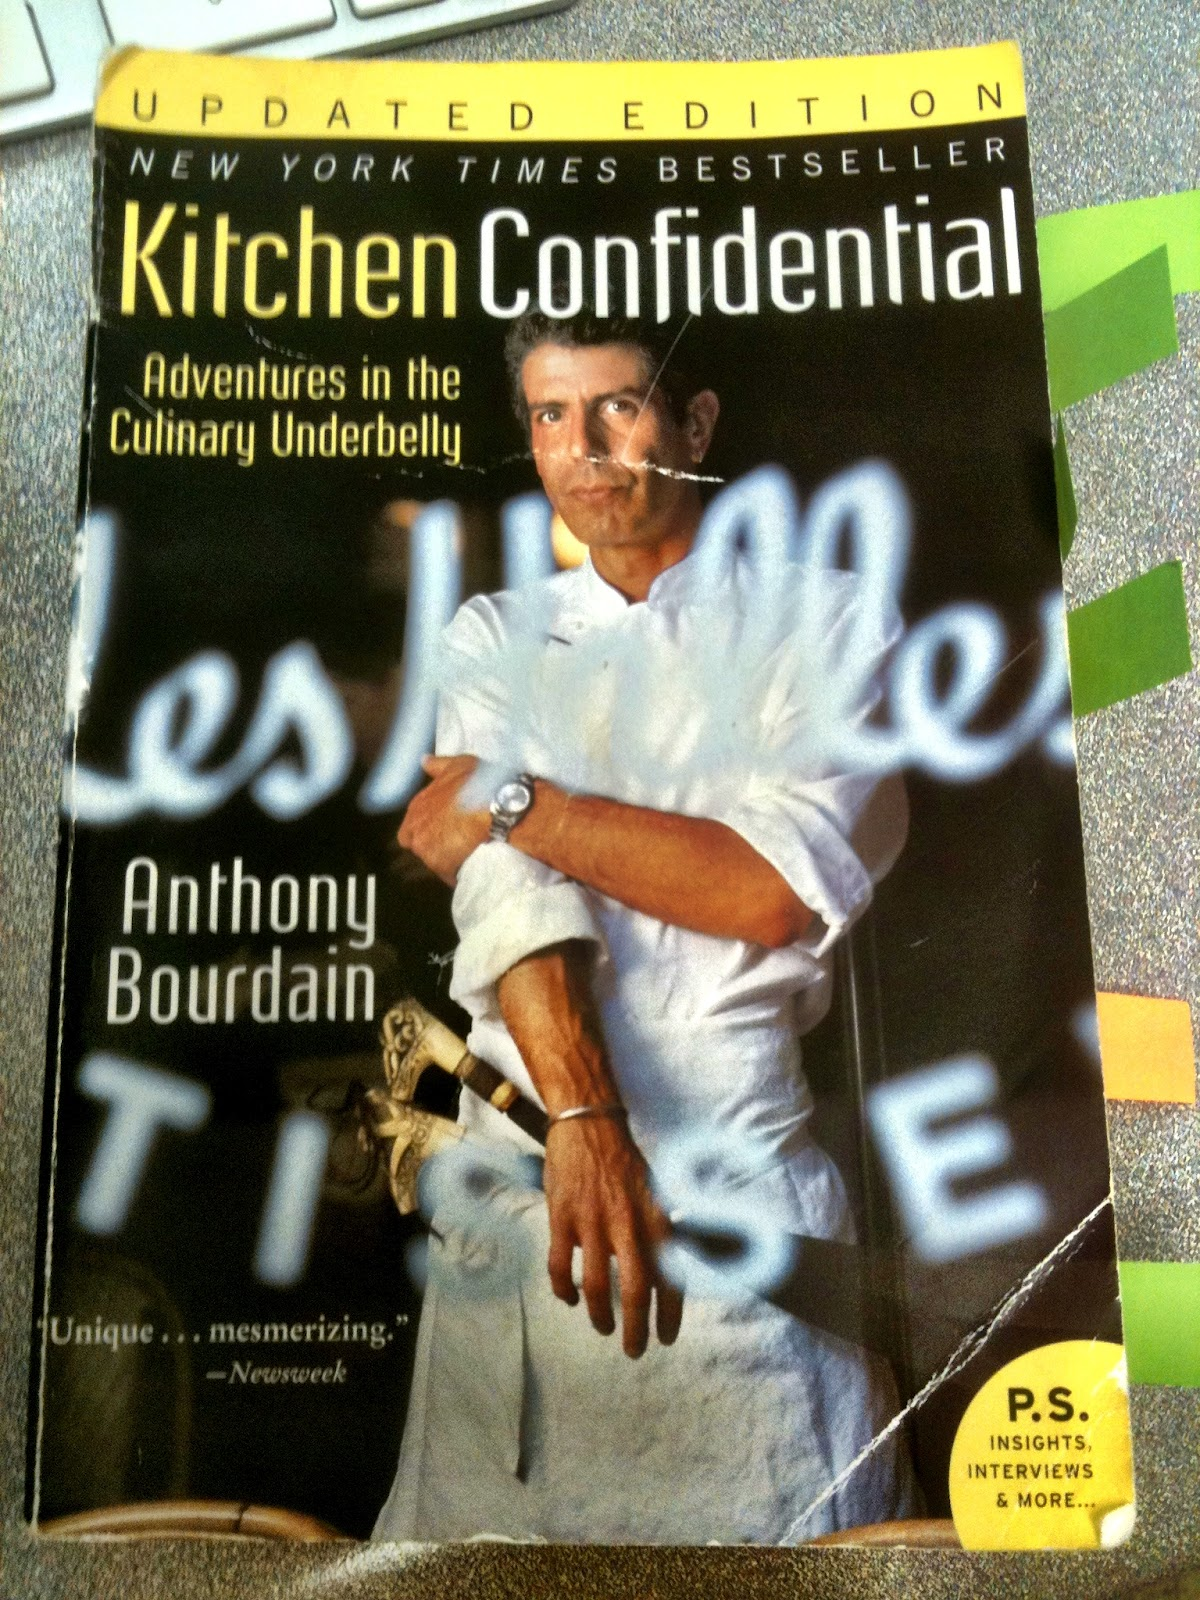 Gentil Eat Your Words: Anthony Bourdainu0027s Kitchen Confidential | Feast With Me